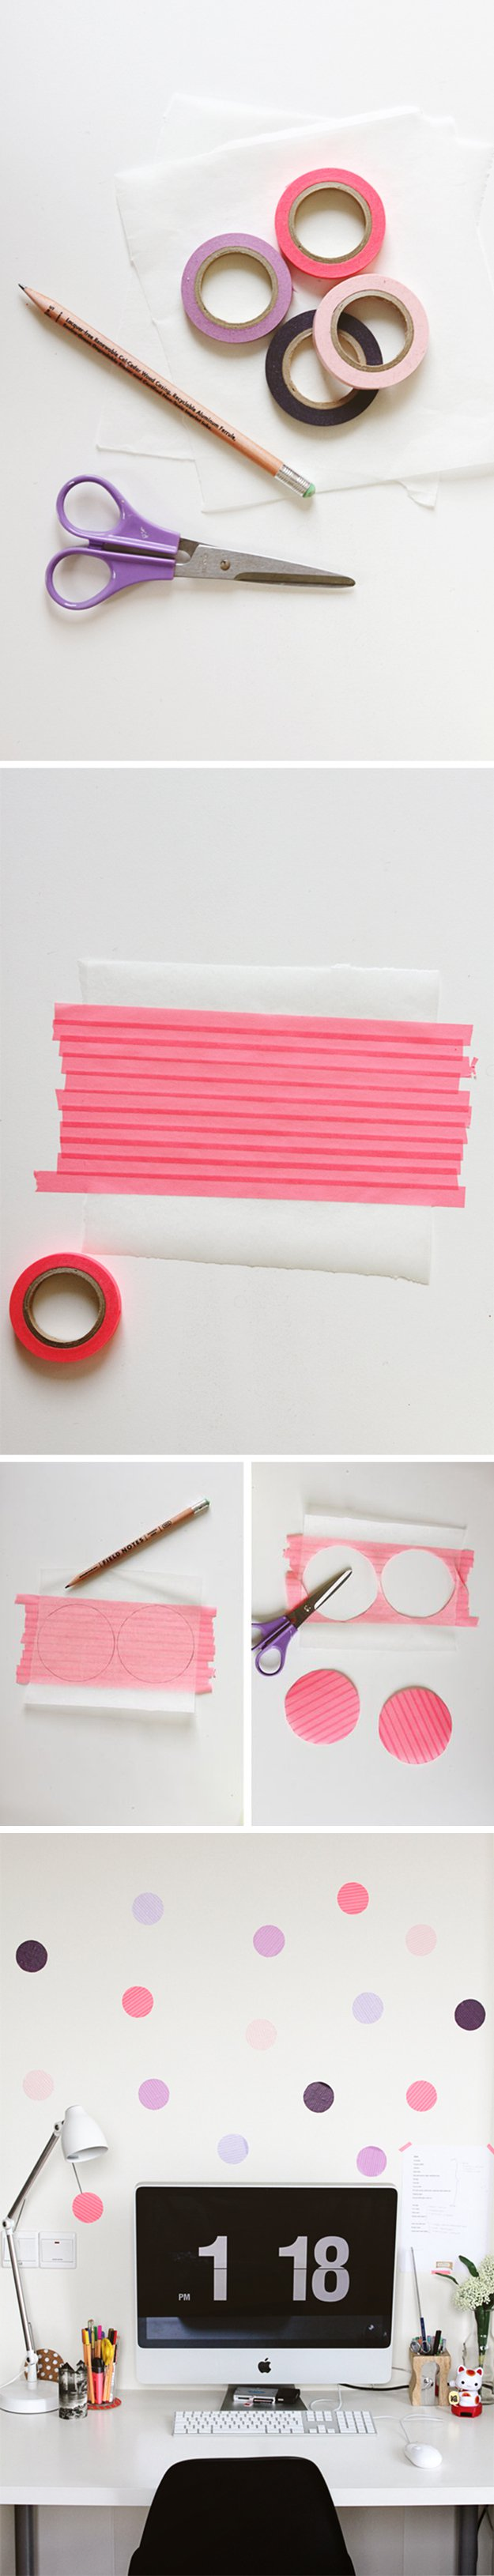 Washi Tape Crafts - DIY Dot Wall - Wall Art, Frames, Cards, Pencils, Room Decor and DIY Gifts, Back To School Supplies - Creative, Fun Craft Ideas for Teens, Tweens and Teenagers - Step by Step Tutorials and Instructions #washitape #crafts #cheapcrafts #teencrafts